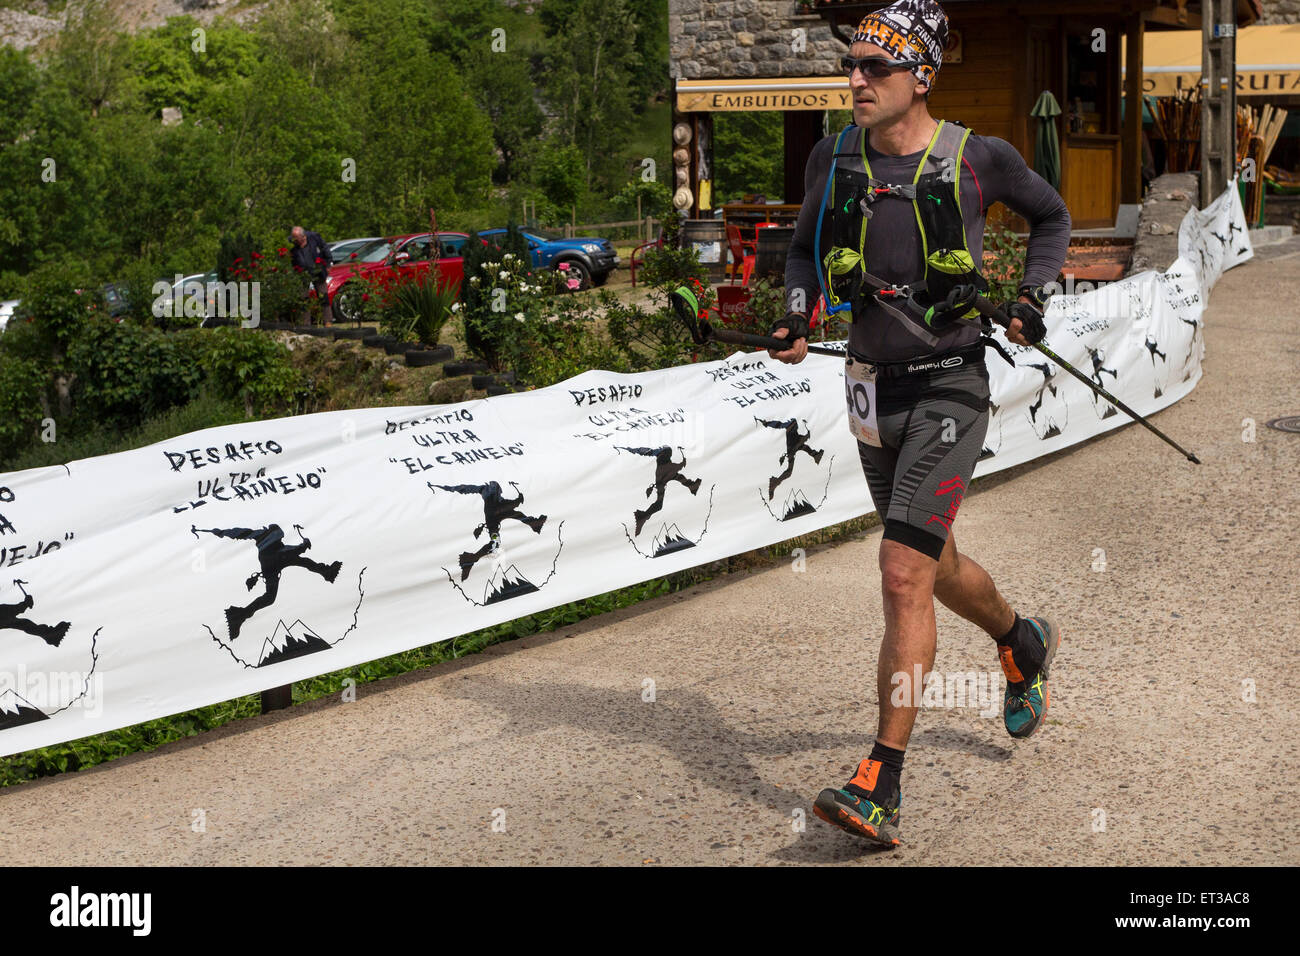 Athlete Competing in the 2015 Ultra Mountain Challenge the 'Desafio ultra El cainejo' Cain Picos de Europa - Stock Image